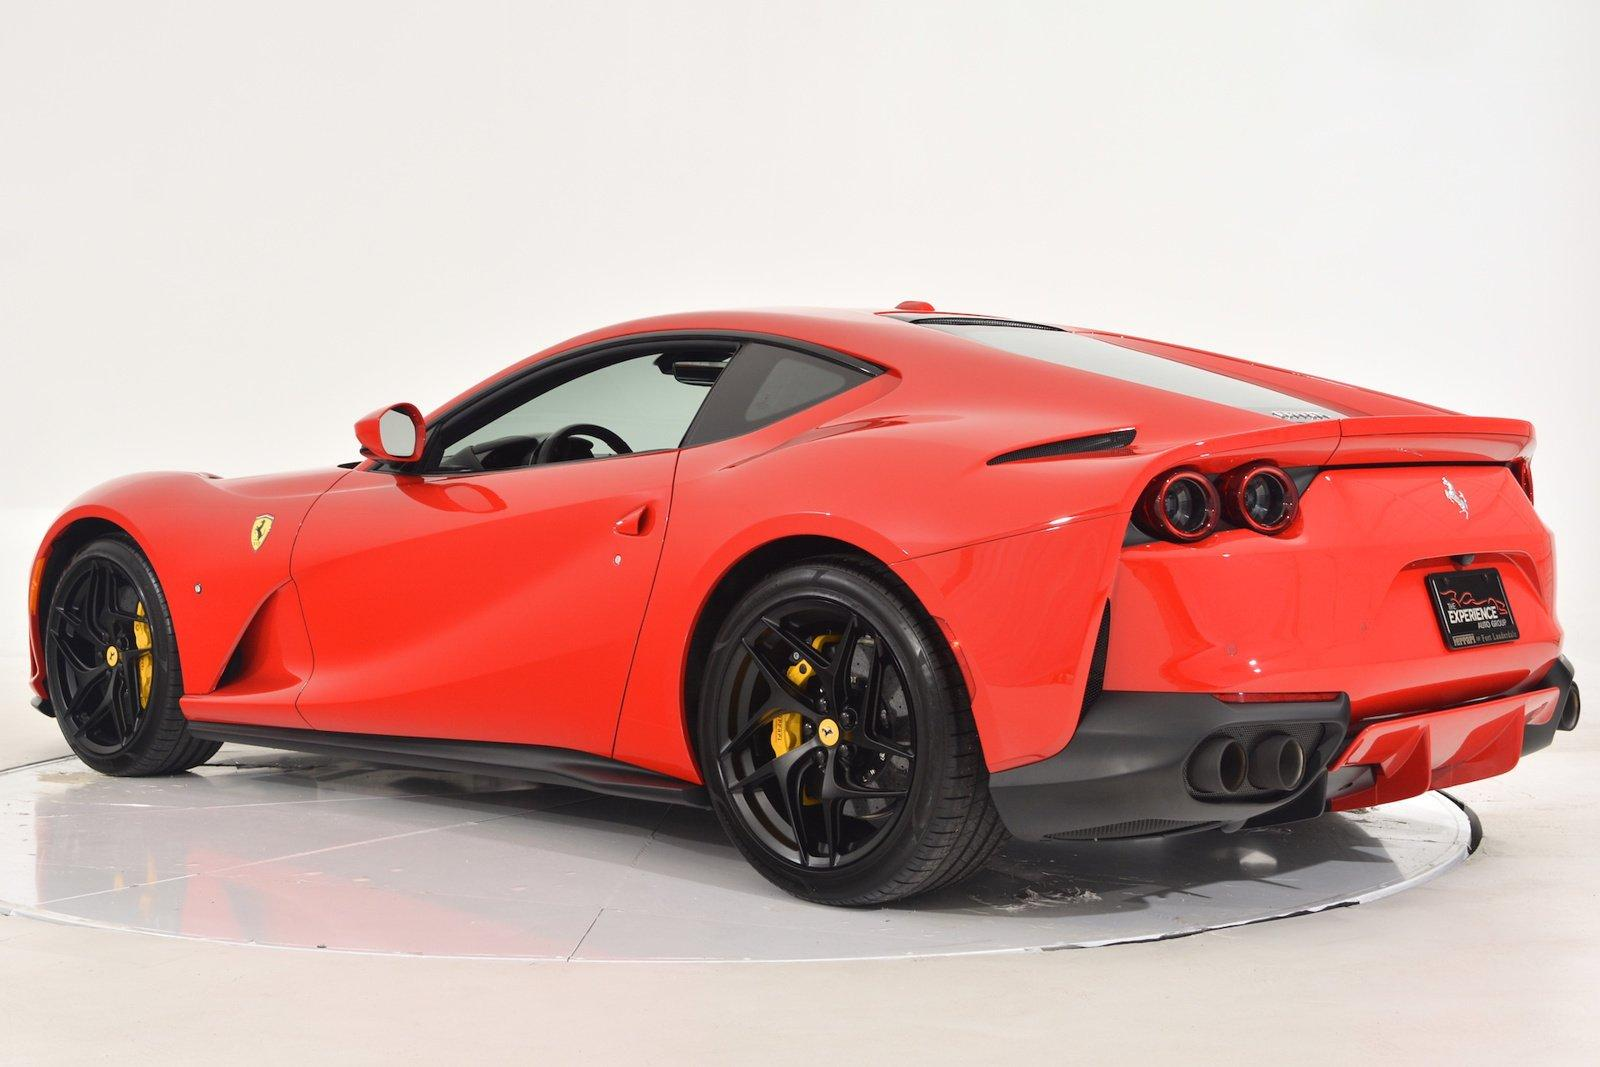 2020 ferrari 812 superfast - ferrari of fort lauderdale - united states